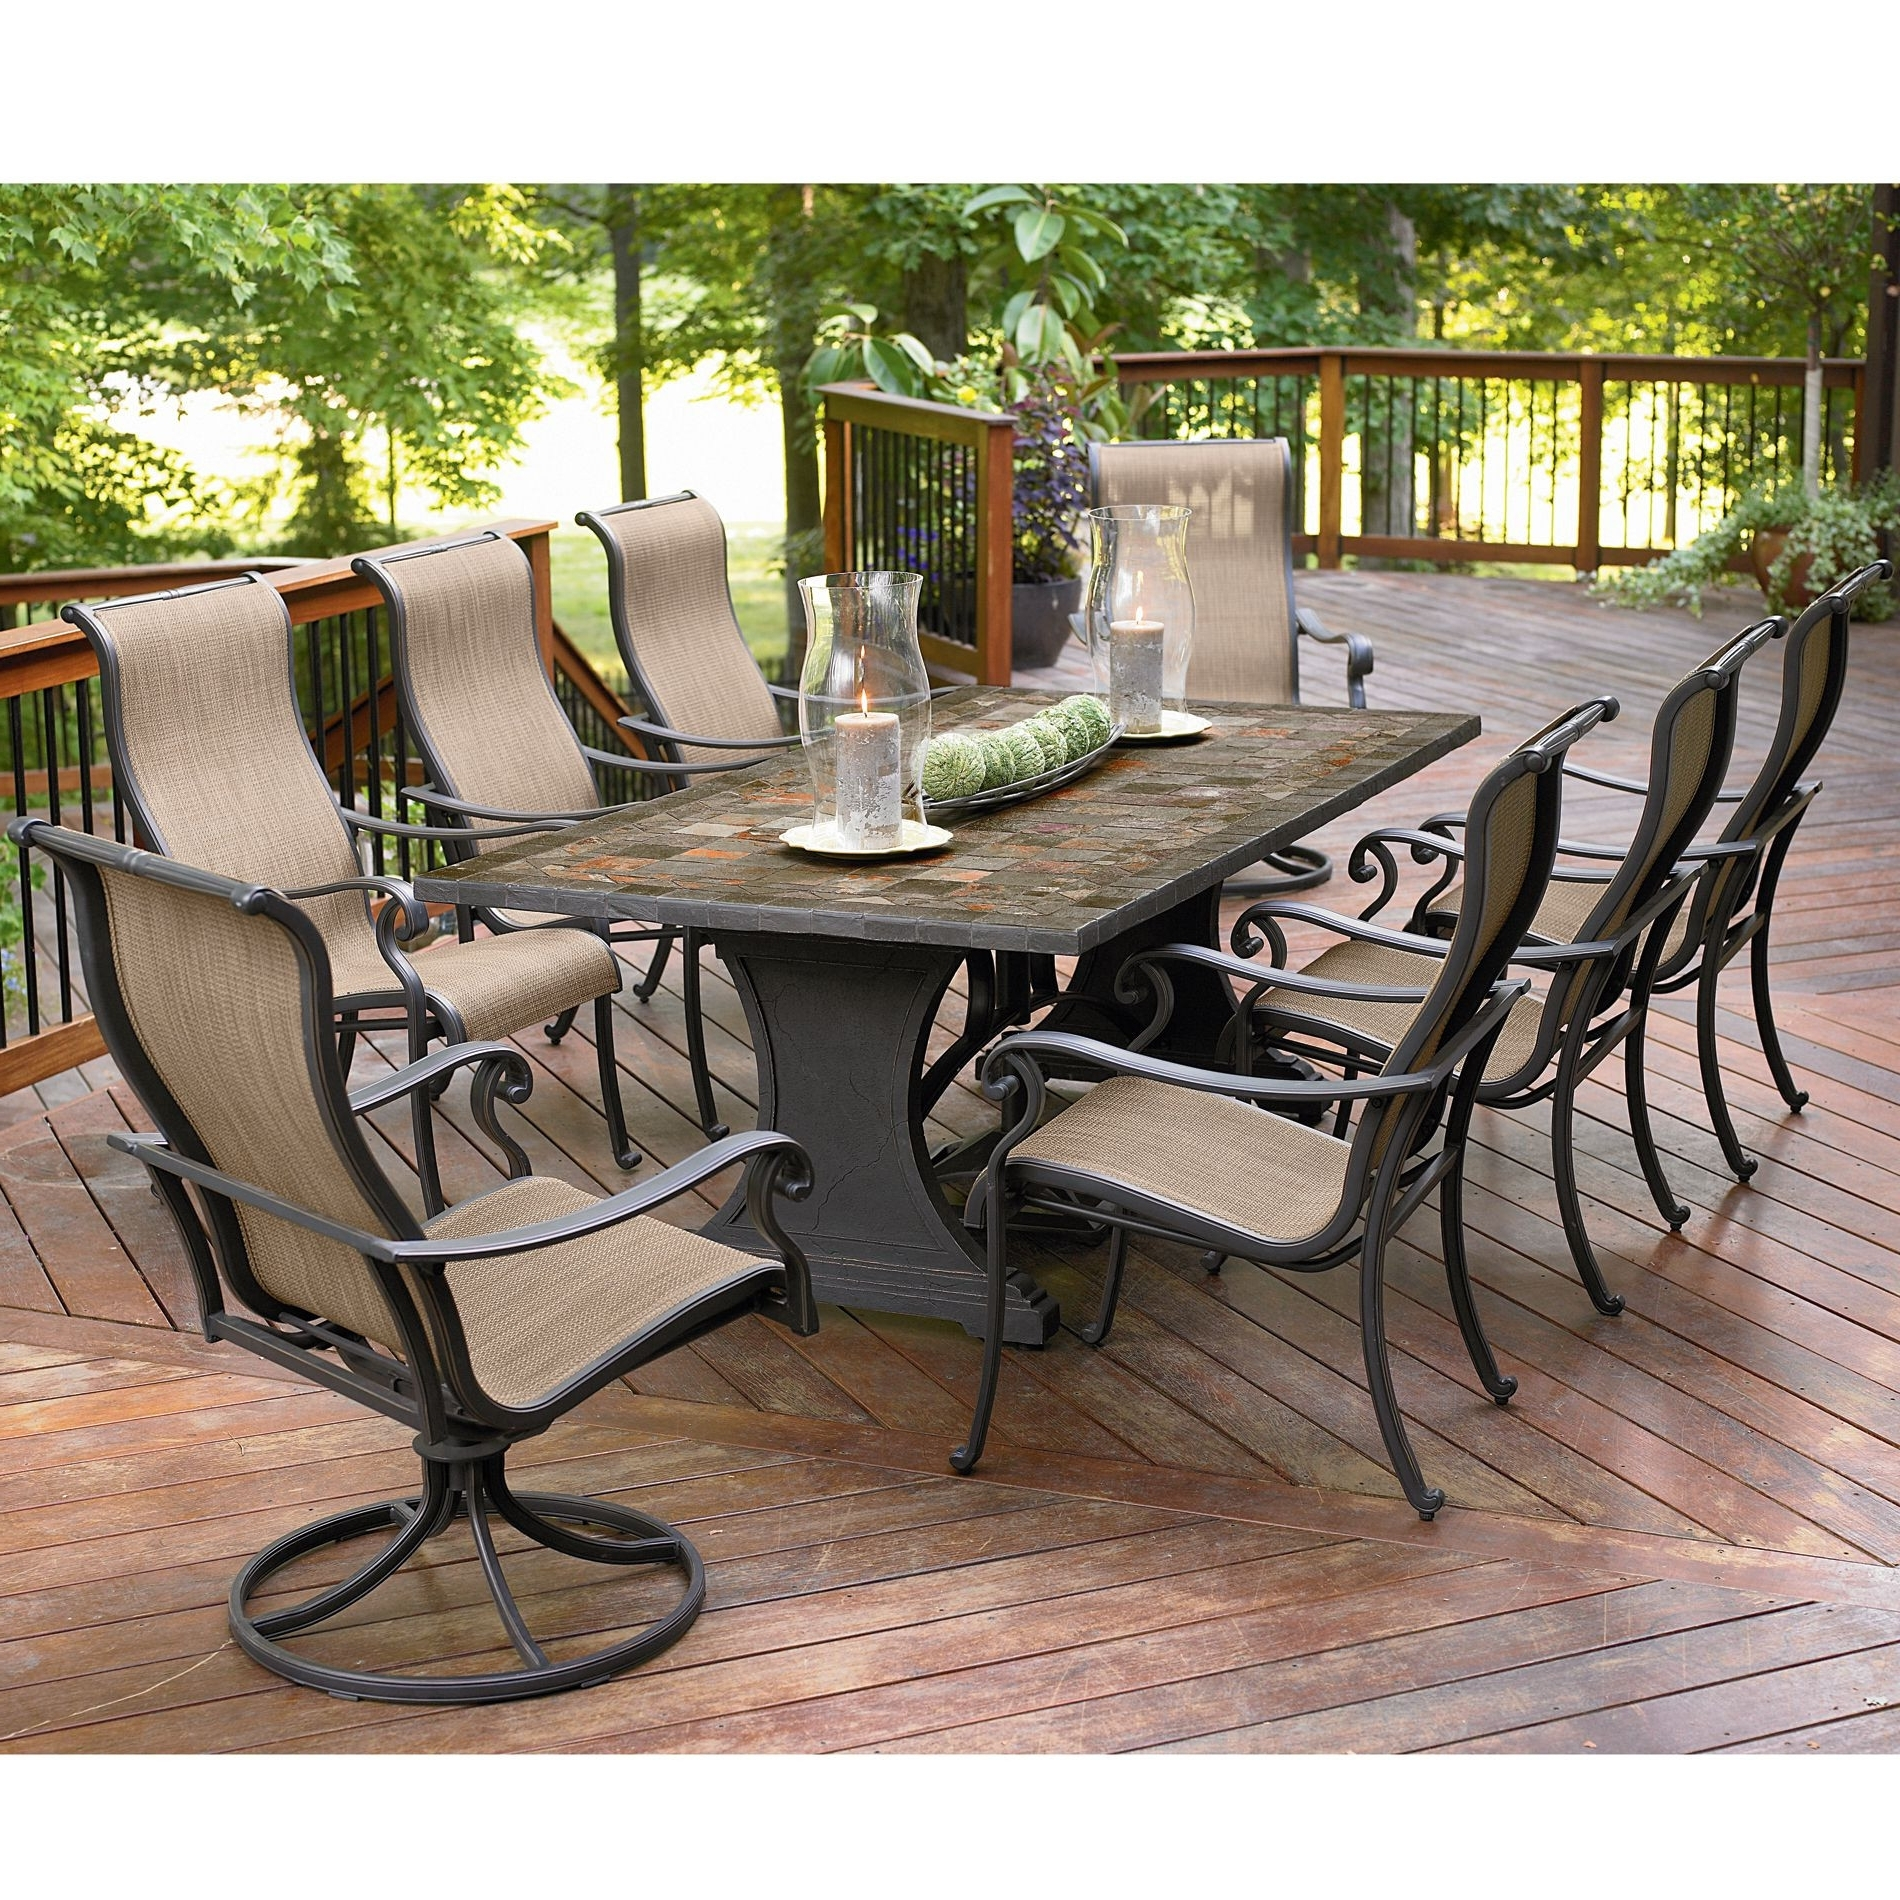 Well Known Sears Patio Furniture Conversation Sets Pertaining To 30 Fresh Outdoor Sectional Dining Set Concept – Bakken Design Build (View 6 of 15)